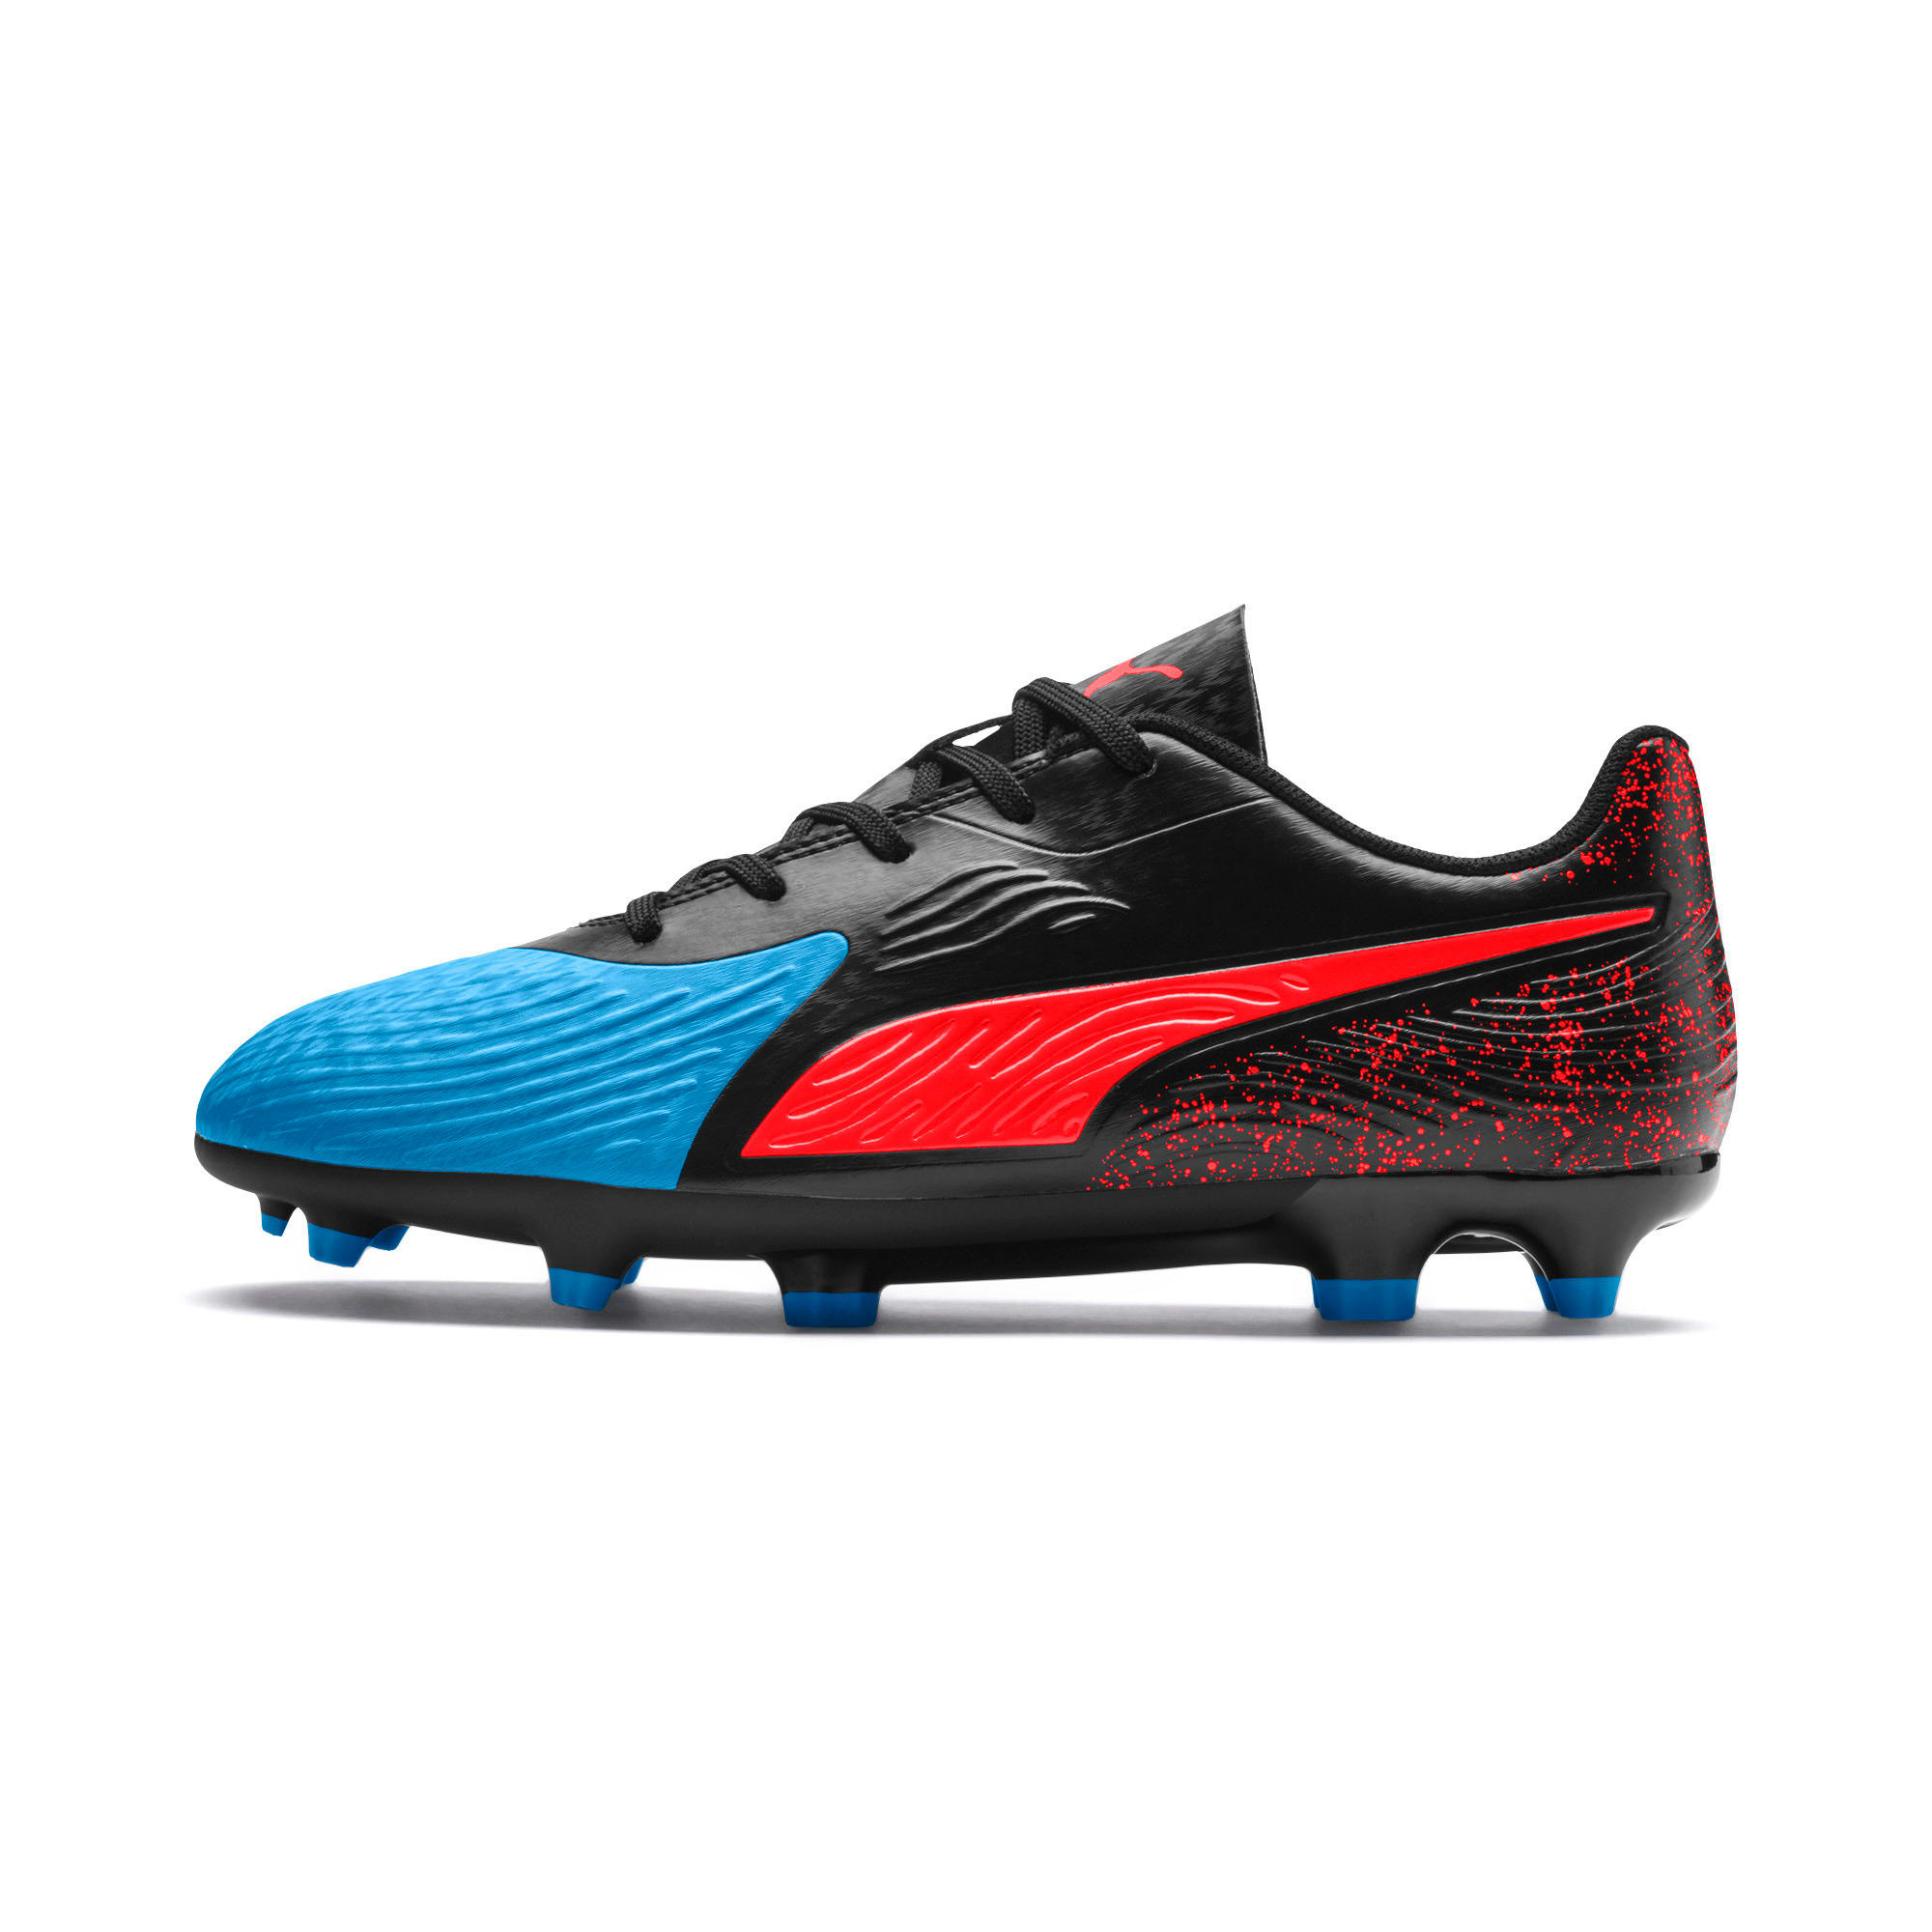 Thumbnail 1 of PUMA ONE 19.4 FG/AG Soccer Cleats JR, Bleu Azur-Red Blast-Black, medium